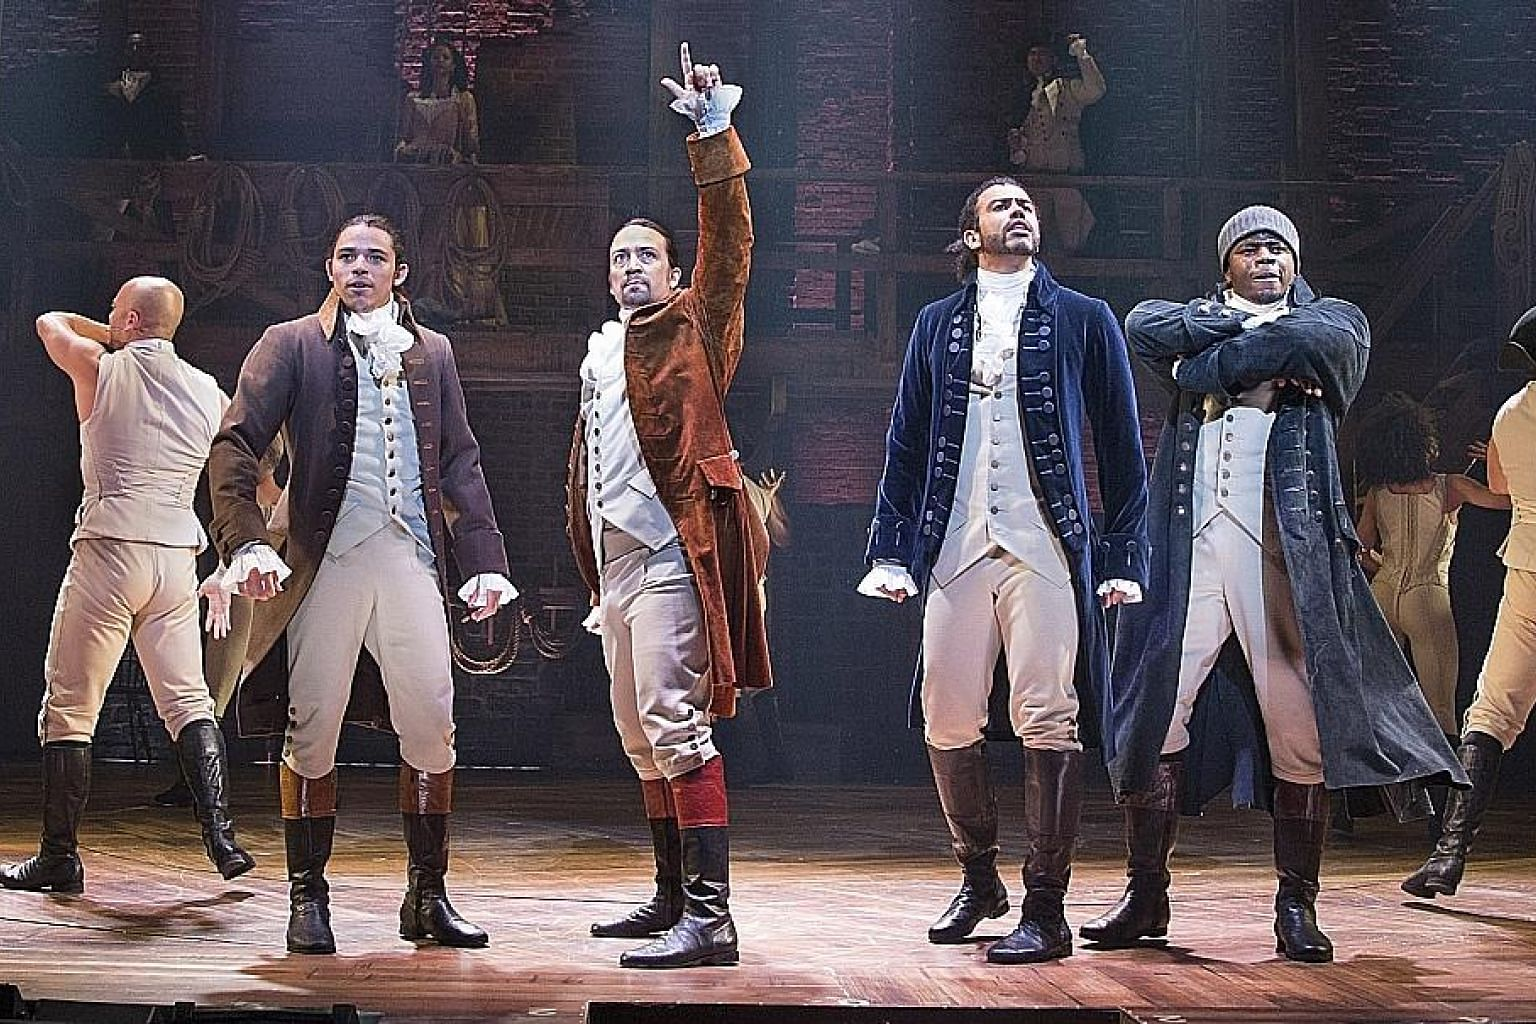 The original cast of the Hamilton musical includes (from left) Anthony Ramos, Lin-Manuel Miranda, Daveed Diggs and Okieriete Onaodowan.